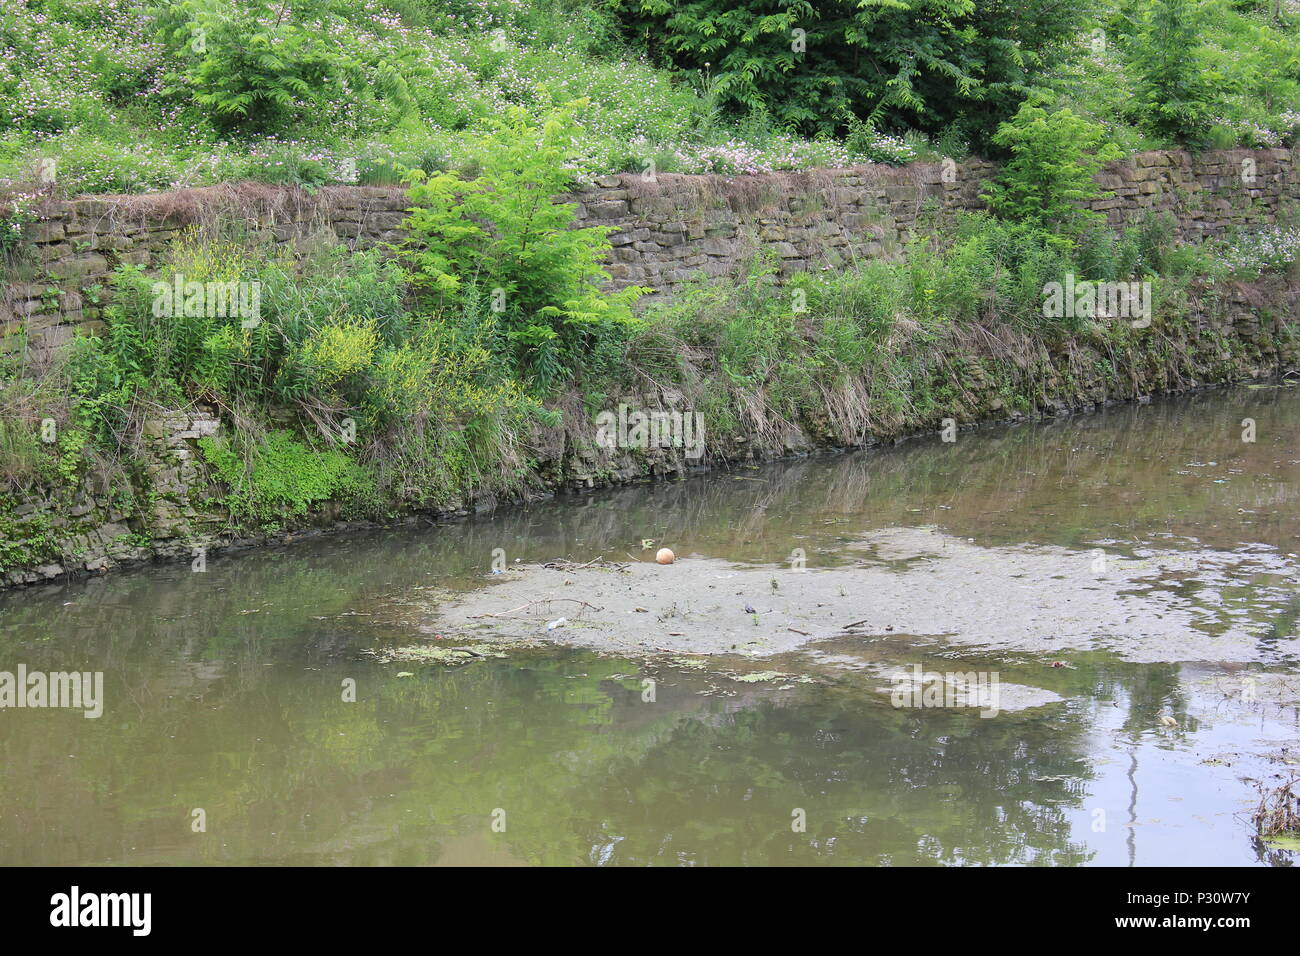 Local scenery of the historic Illinois Michigan canal in Lemont, Illinois. - Stock Image